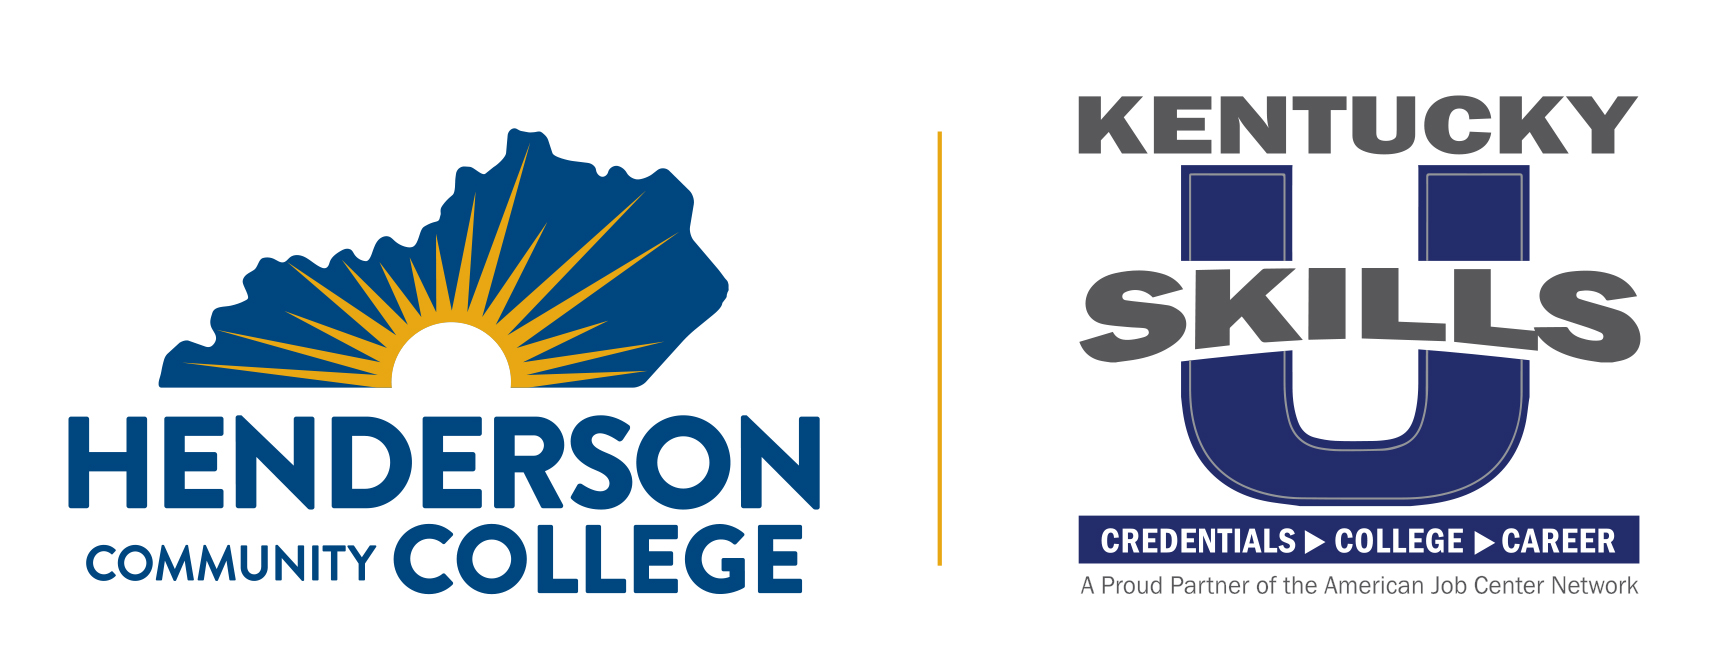 HCC and Kentucky SkillsU Logo